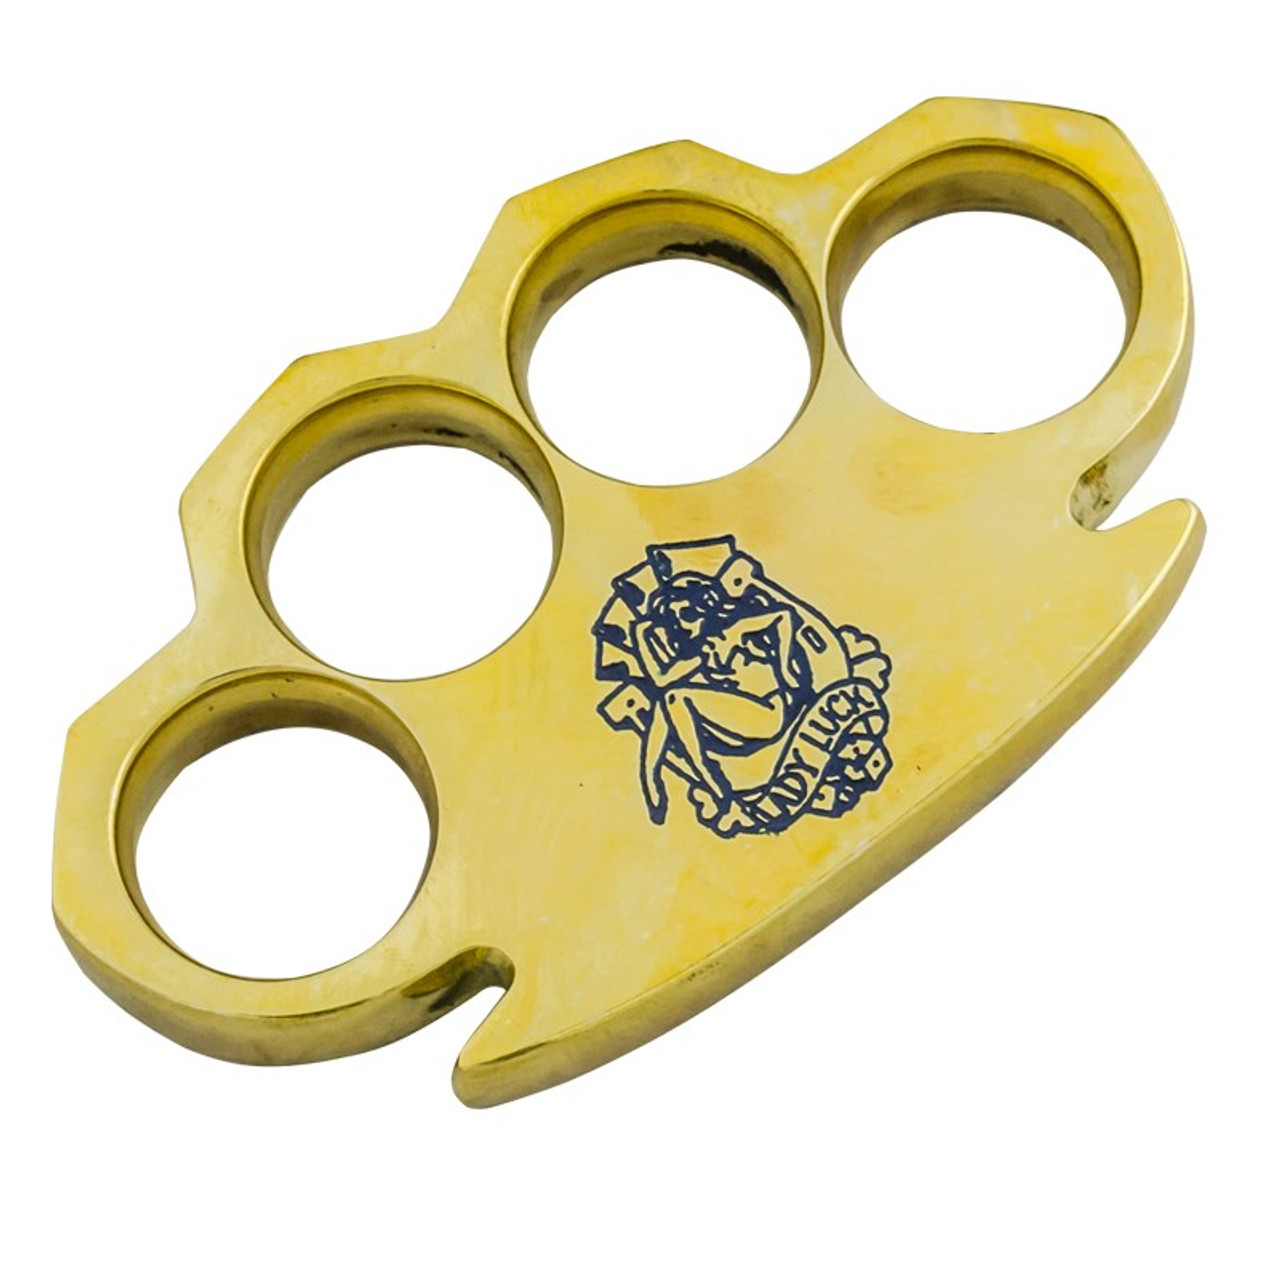 Dalton 10 OZ Real Brass Knuckles Buckle Paperweight - Heavy Duty Lady Luck Blue